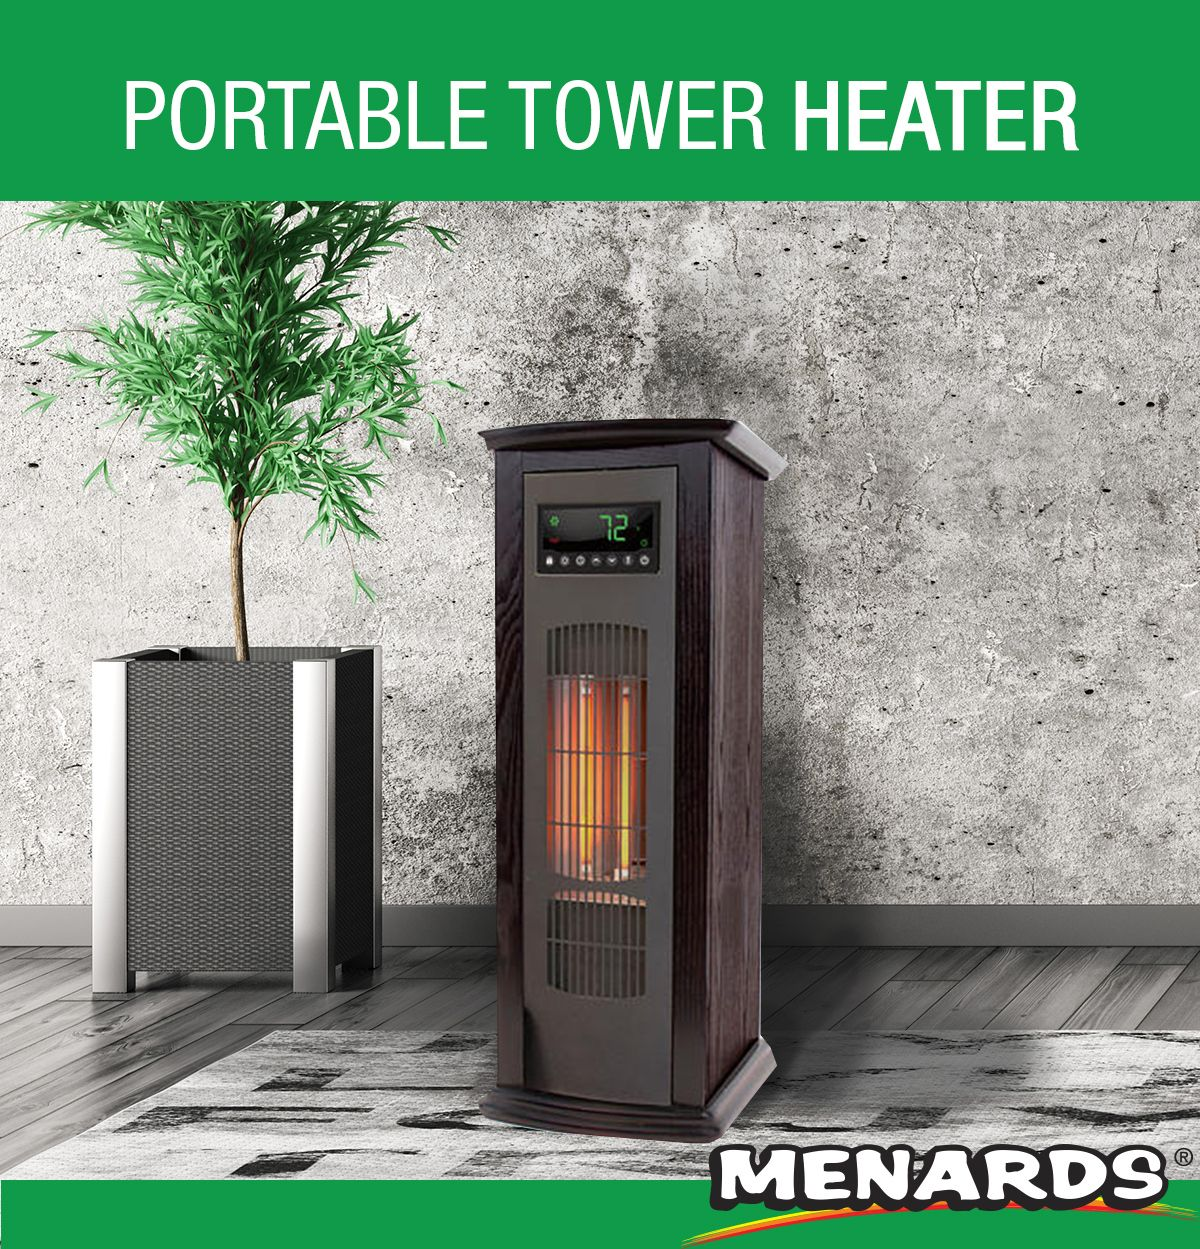 Portable electric infrared heater with 3 quartz elements